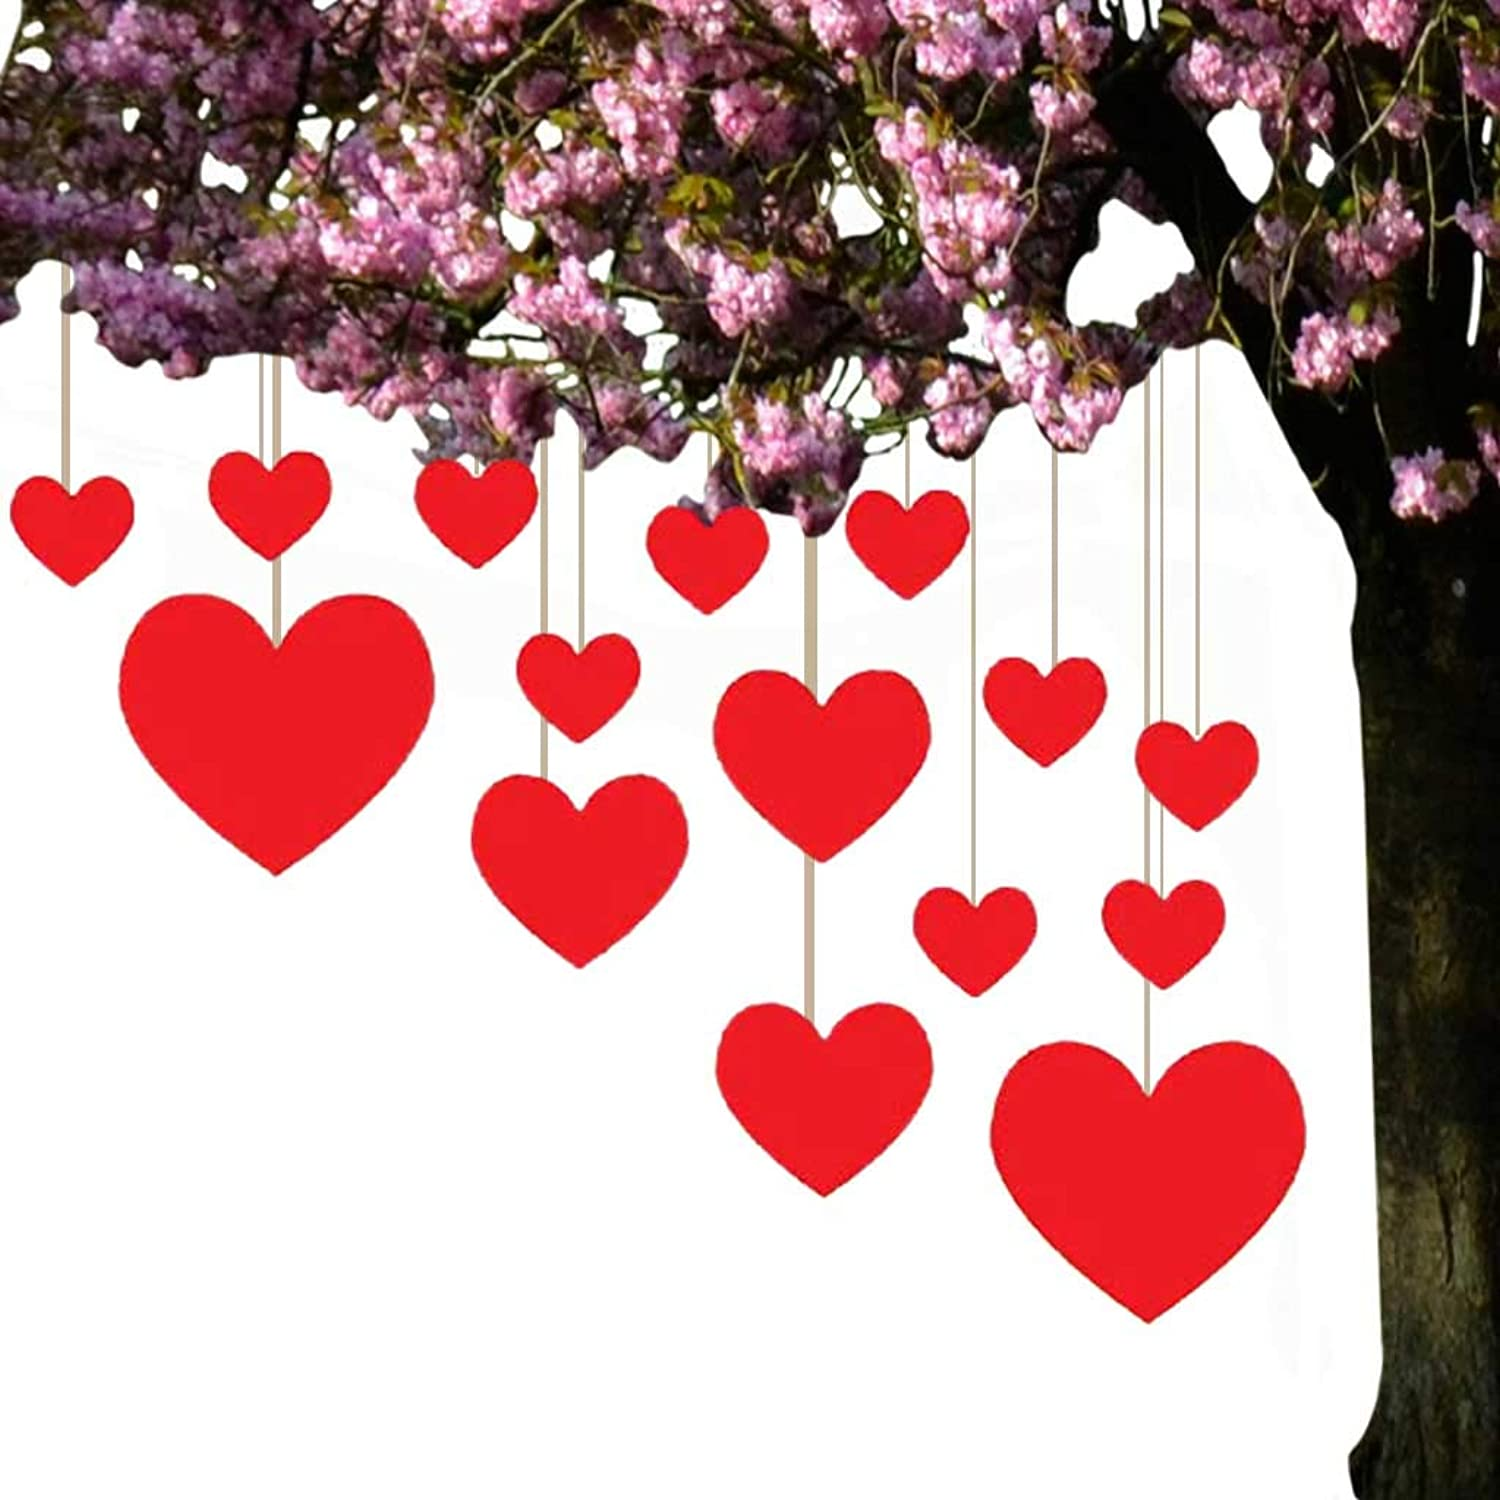 Valentine's Lawn Decorations - Hanging Hearts (Set of 15)